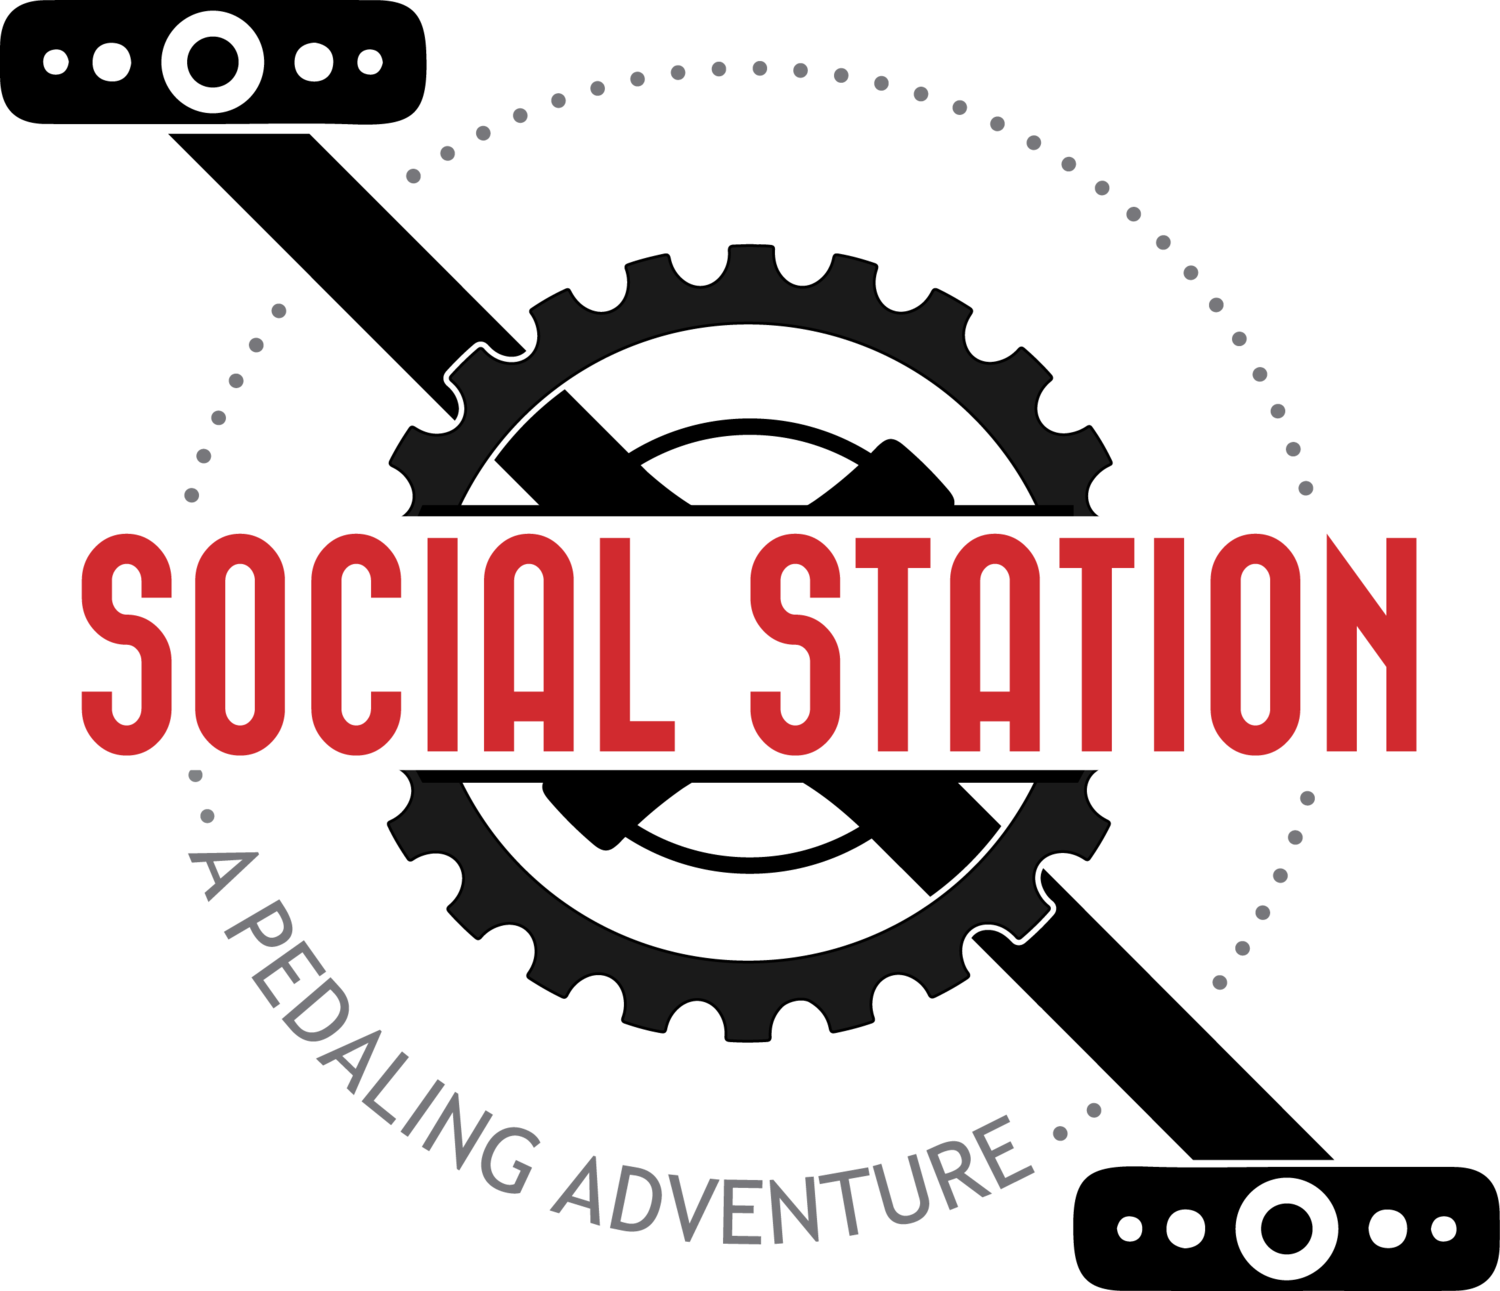 The Social Station | Pedal Tours | Pub Crawls | Appleton, WI